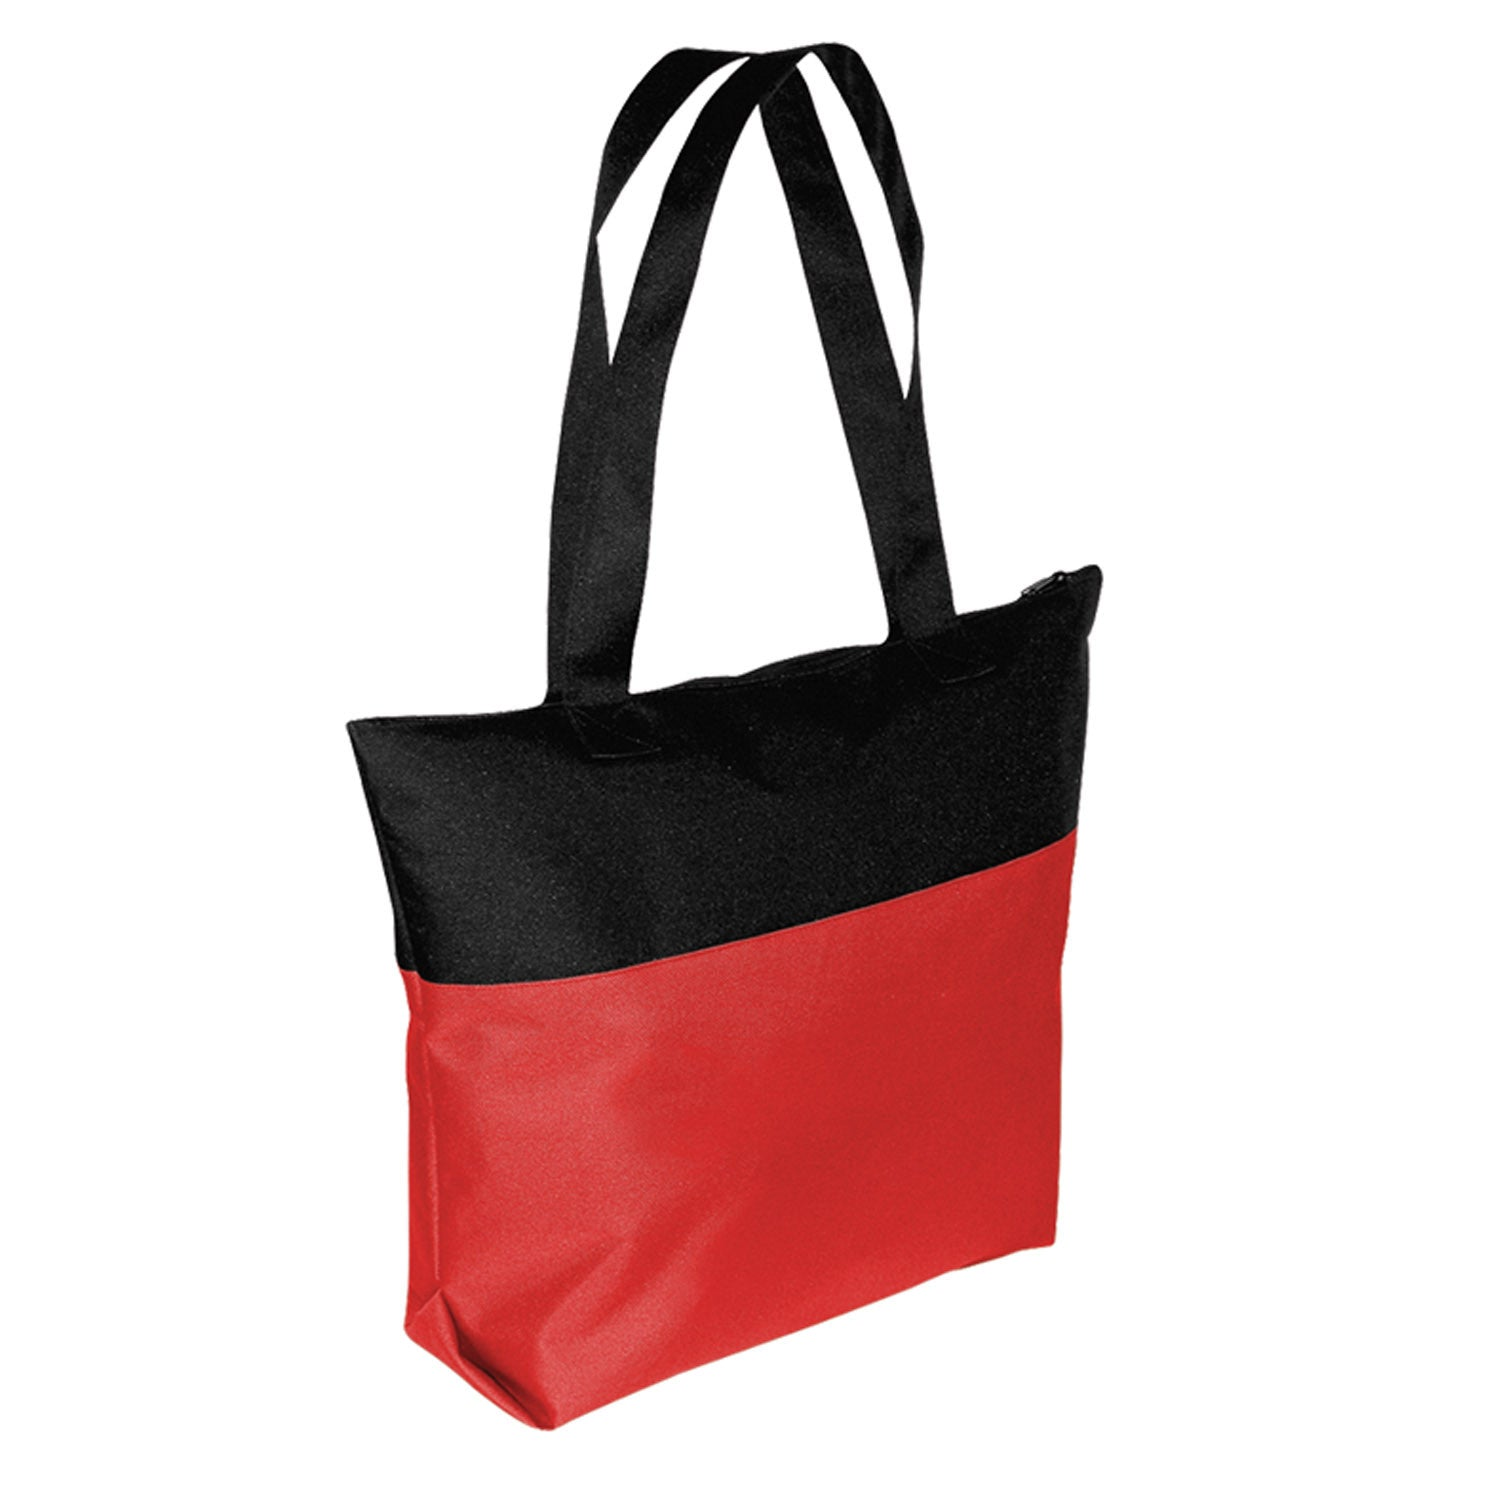 Two Tone Tote Bag with Zip Closure